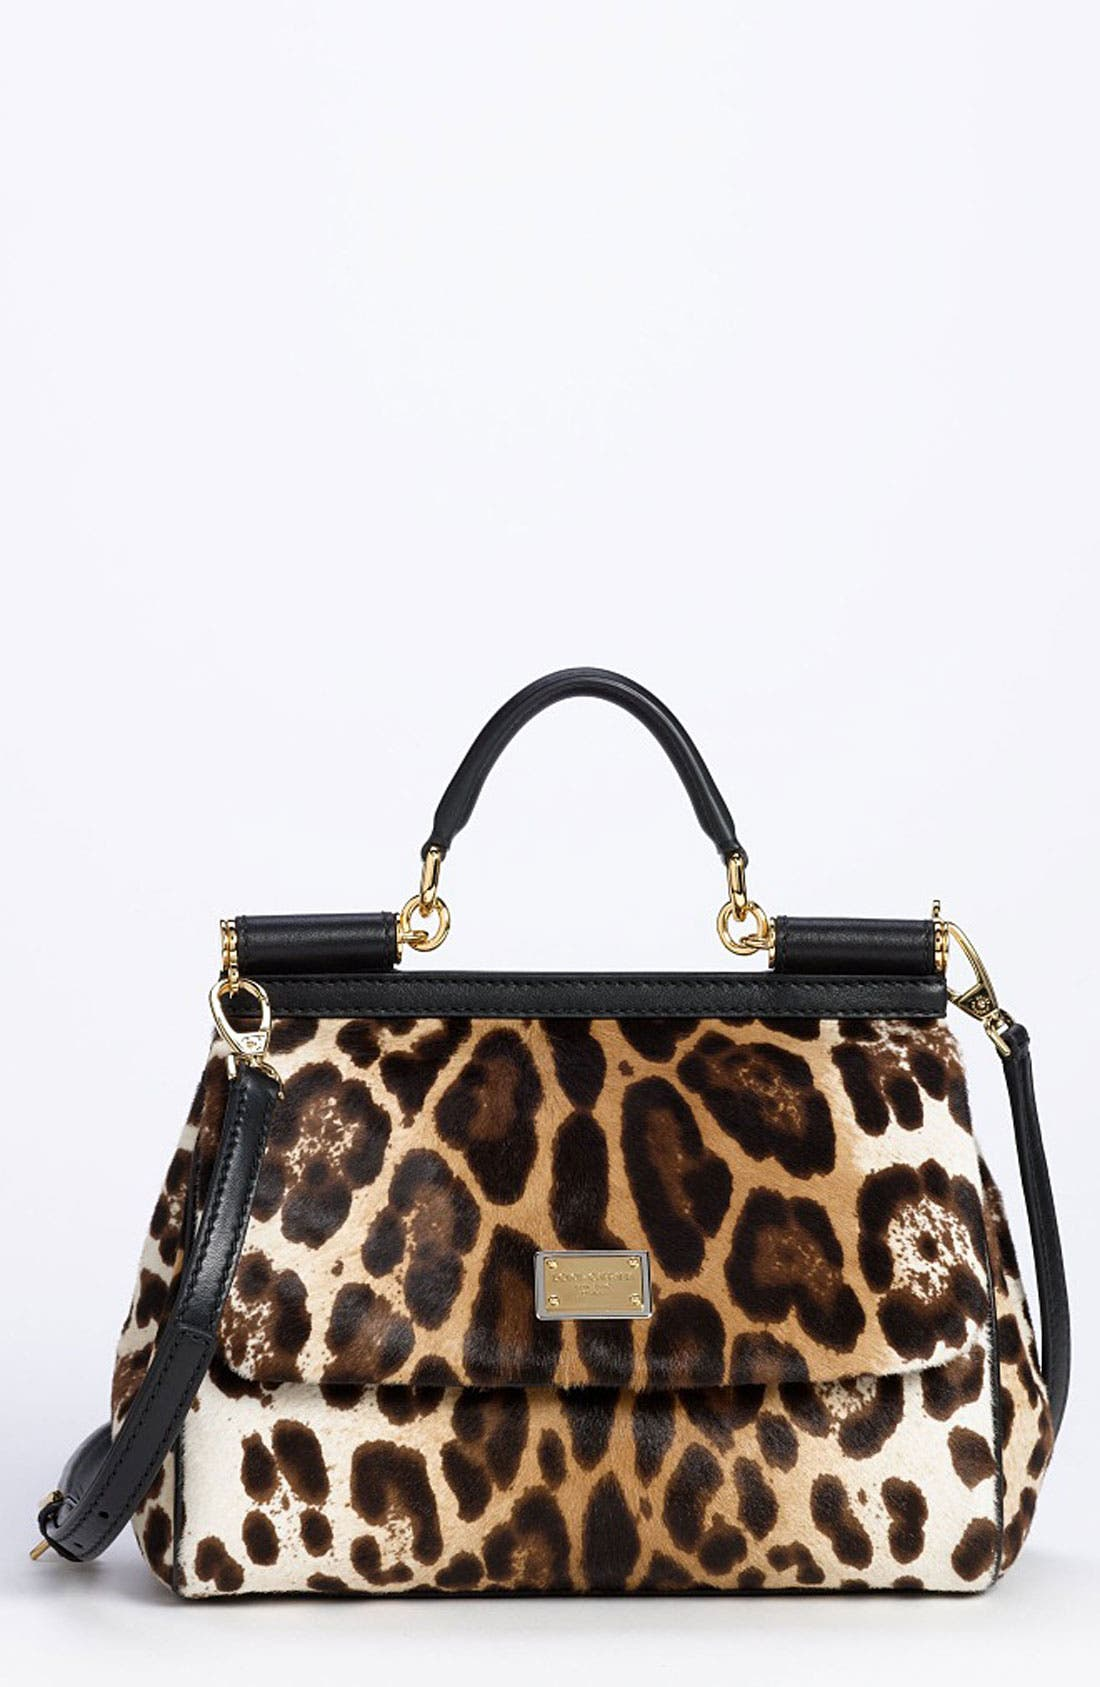 Main Image - Dolce&Gabbana 'Miss Sicily' Genuine Calf Hair Satchel